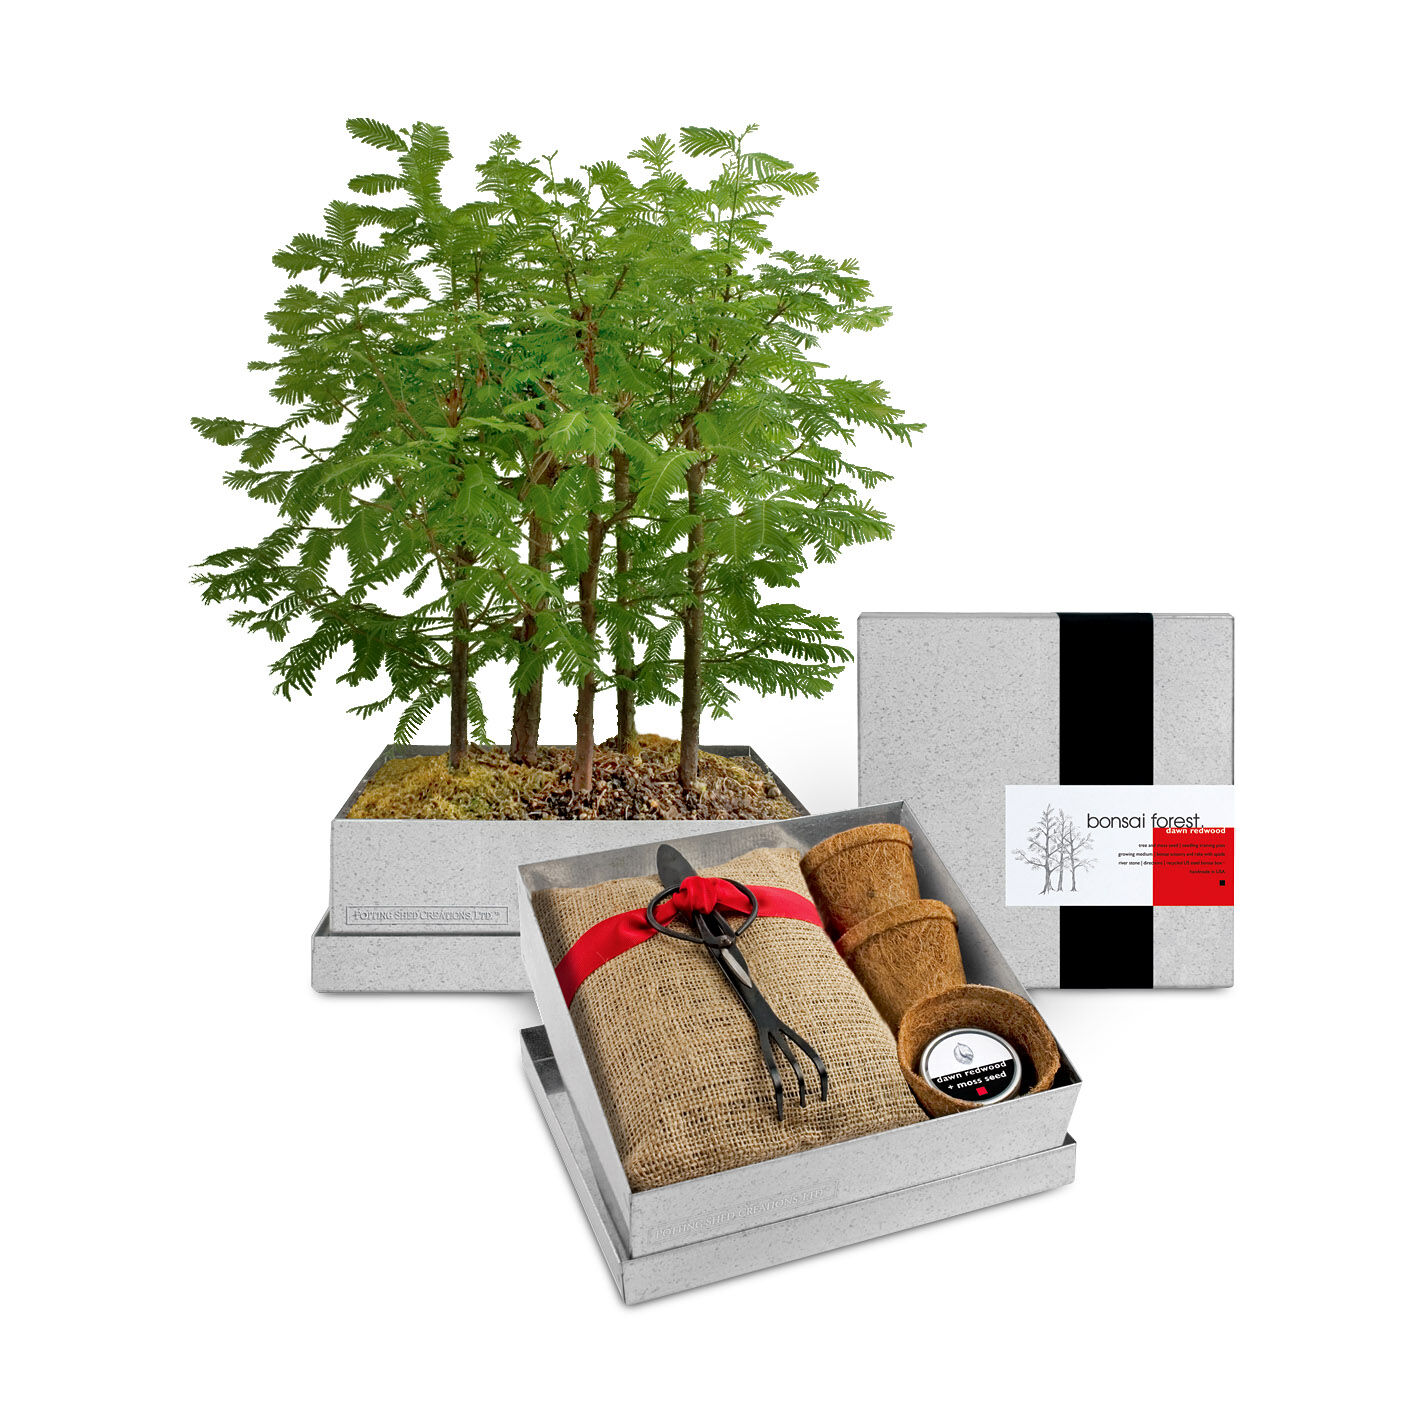 Bonsai Forest Growing Kit MoMA Design Store